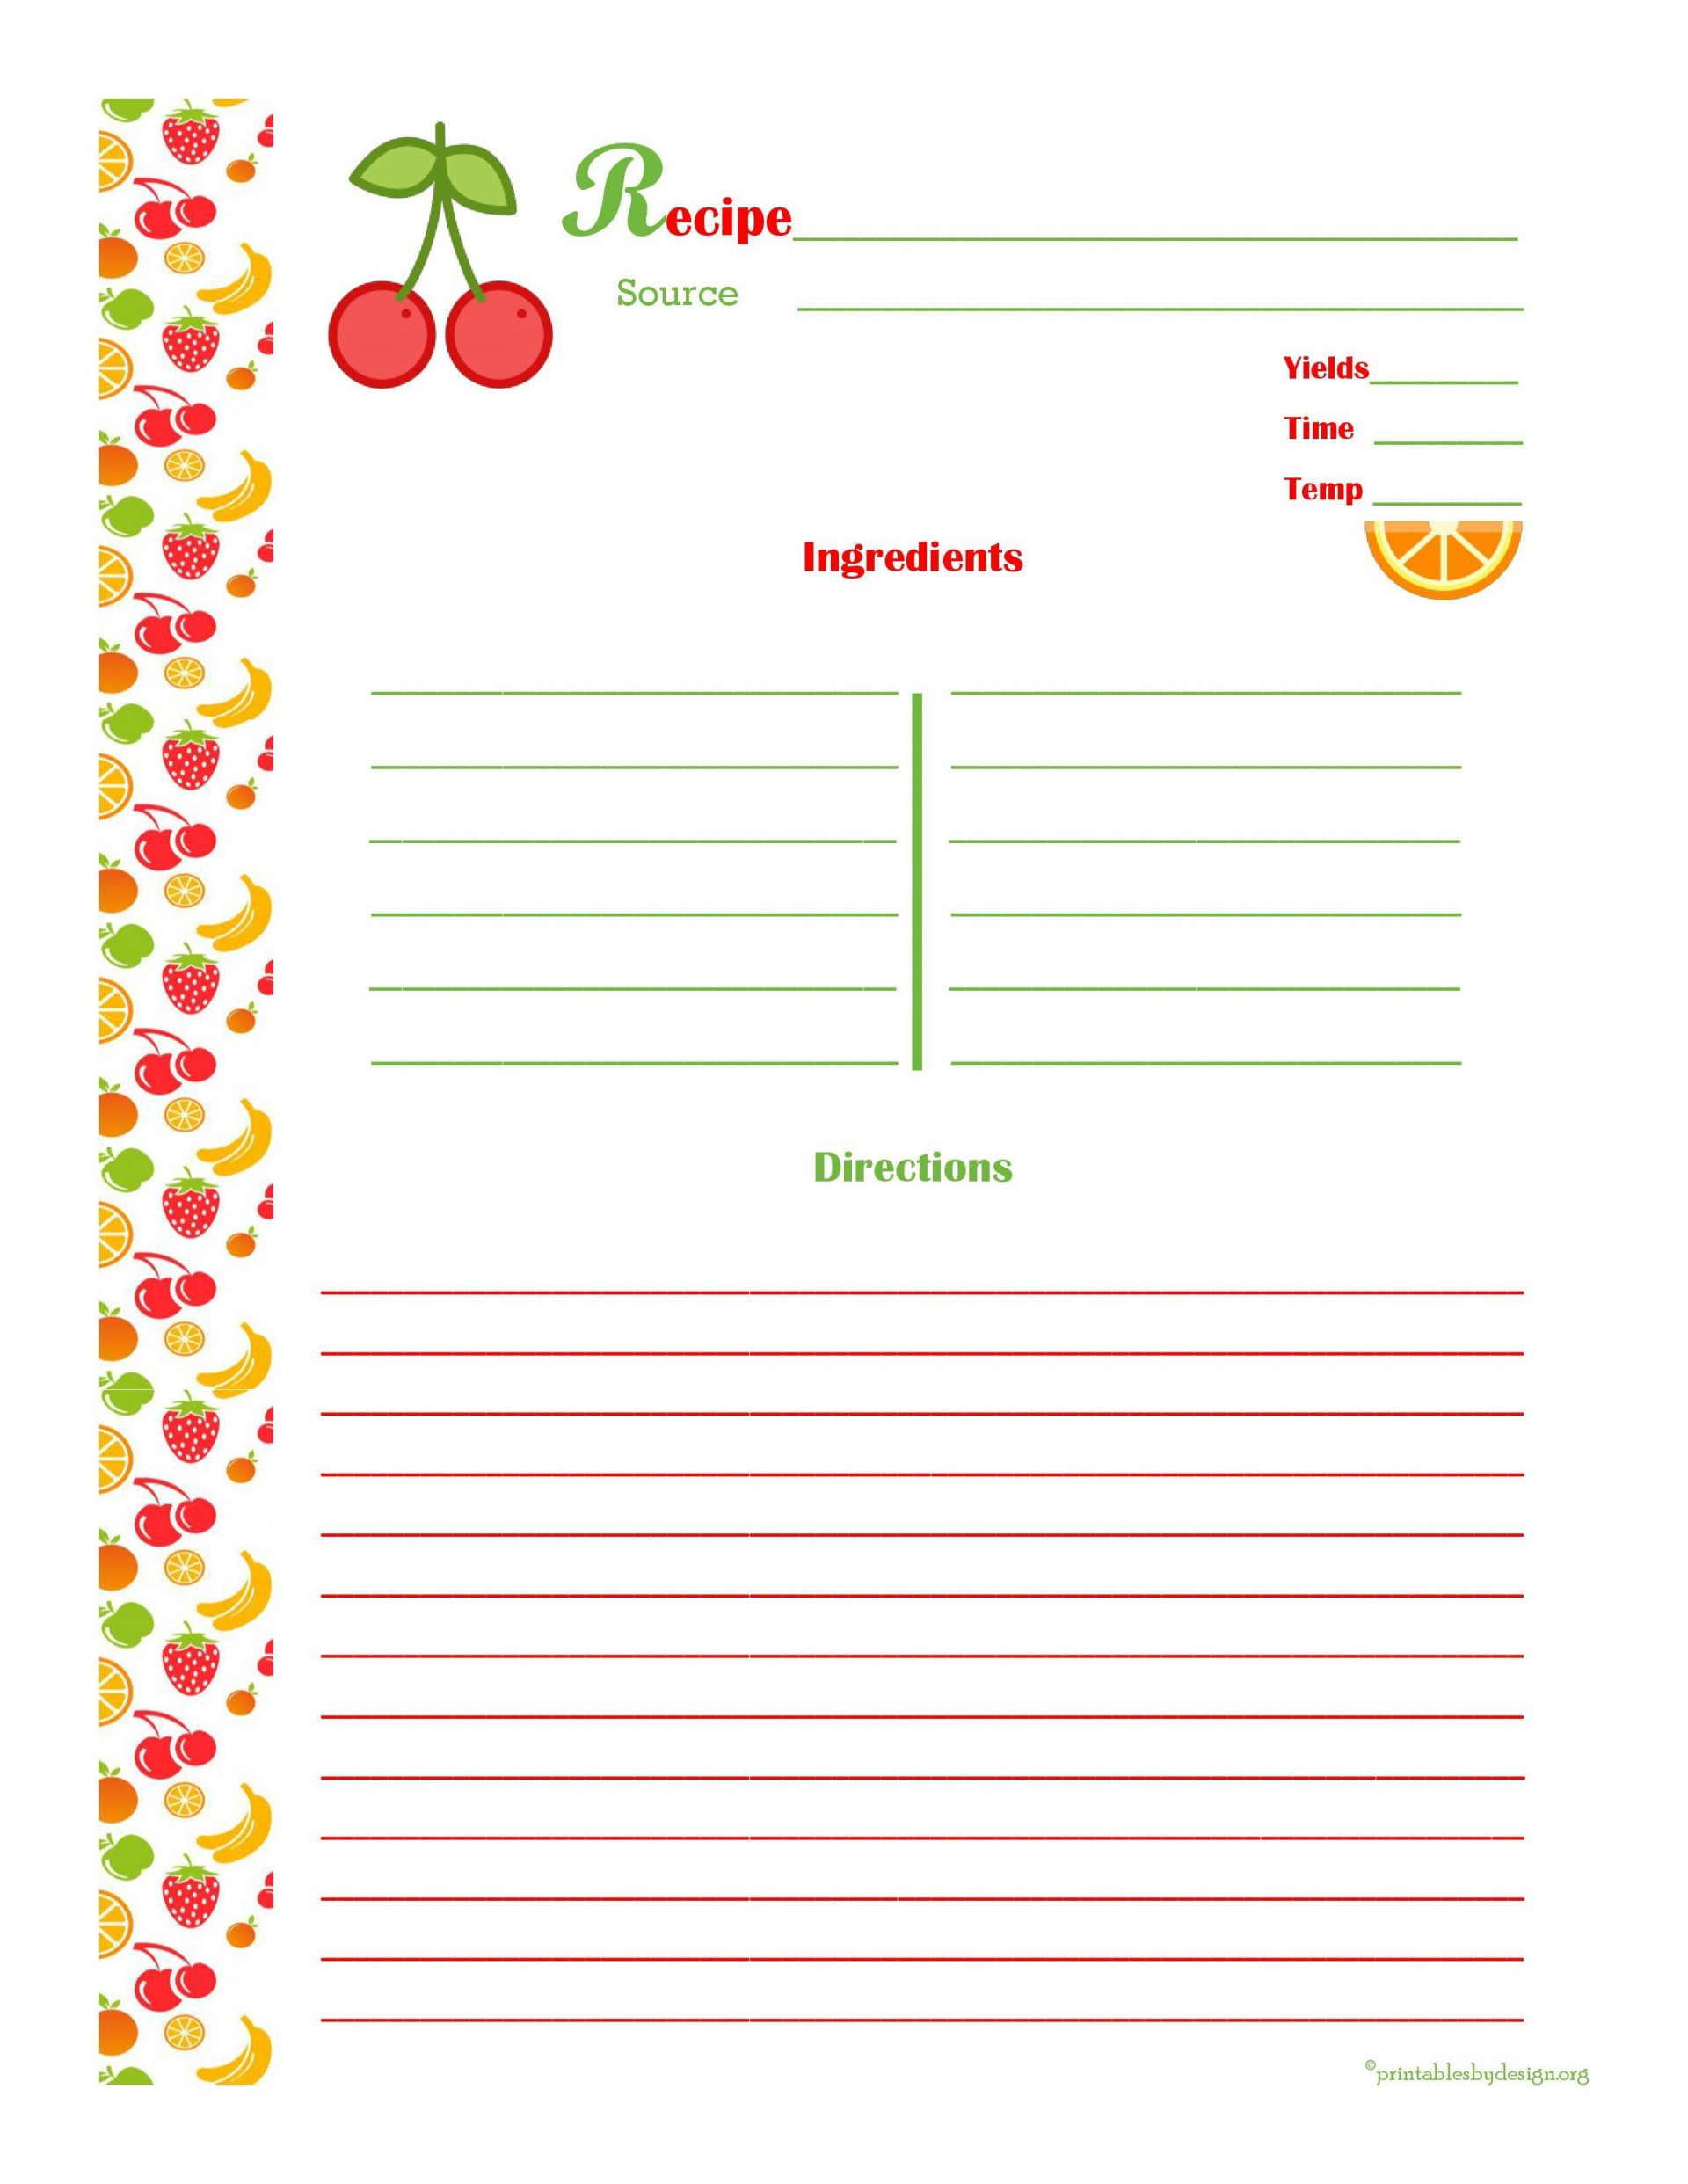 008 Unforgettable Full Page Recipe Template Photo  Card For Word Free Editable1920